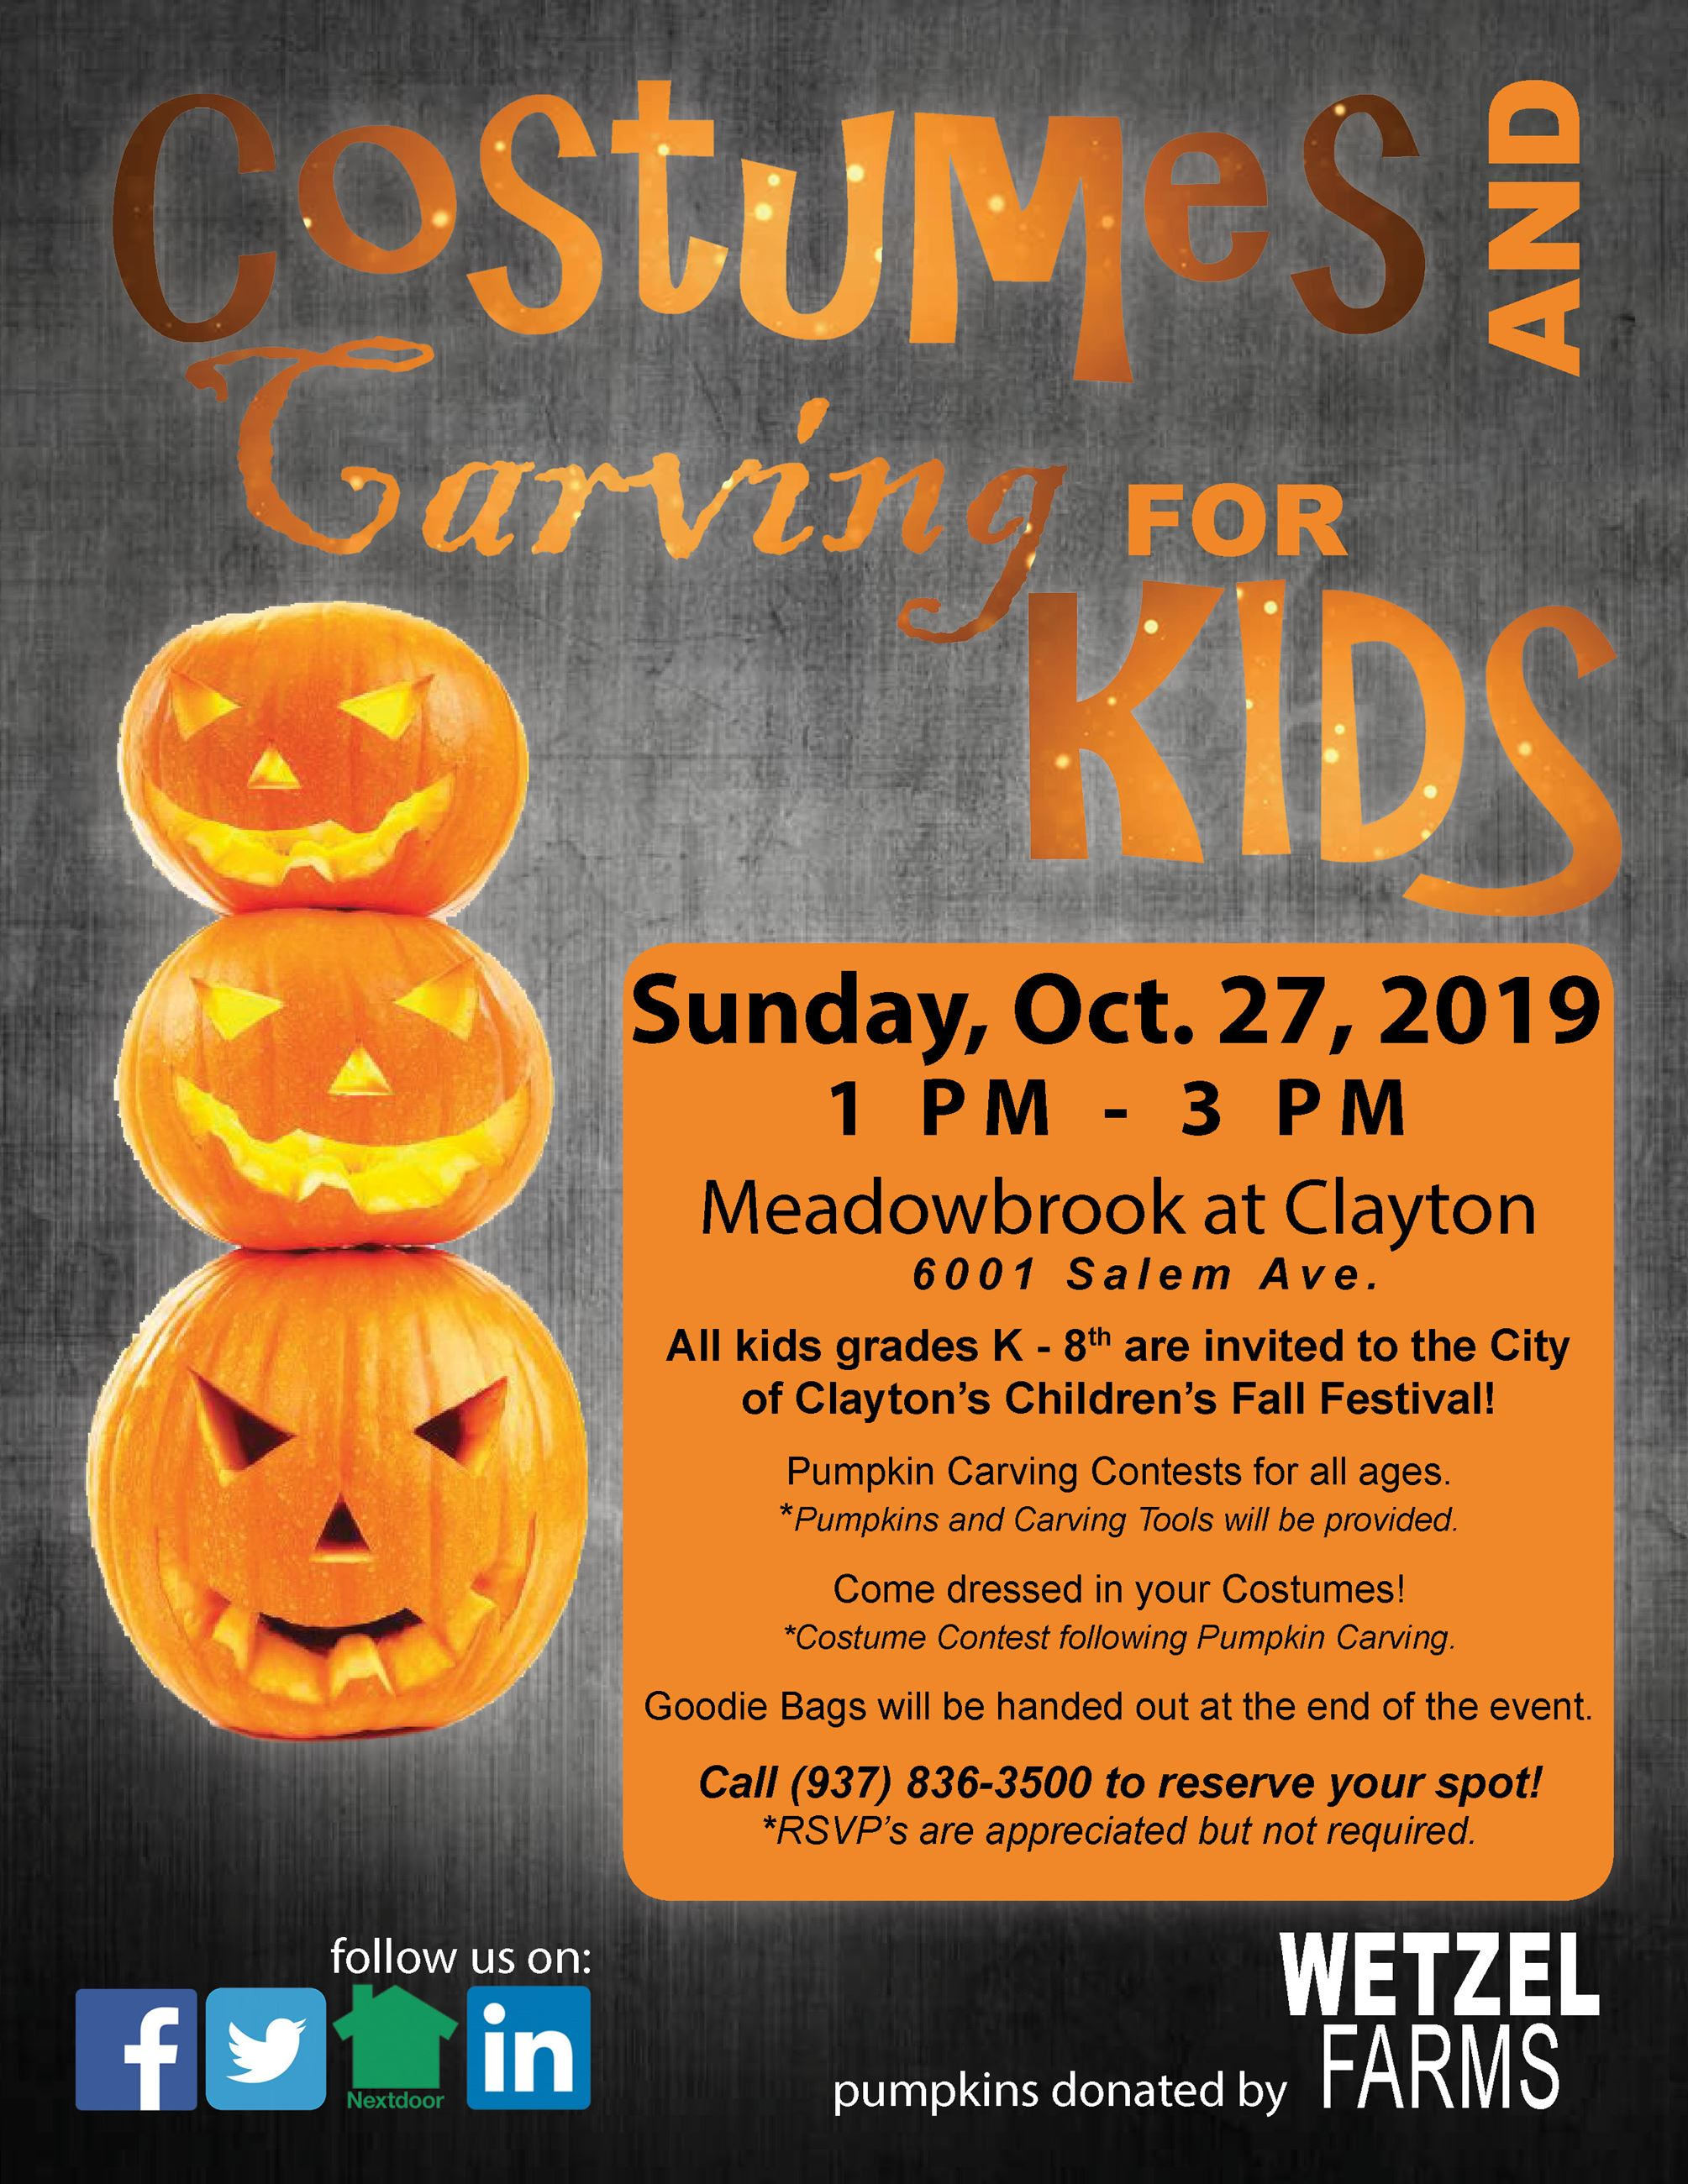 2019 Carving Flyer